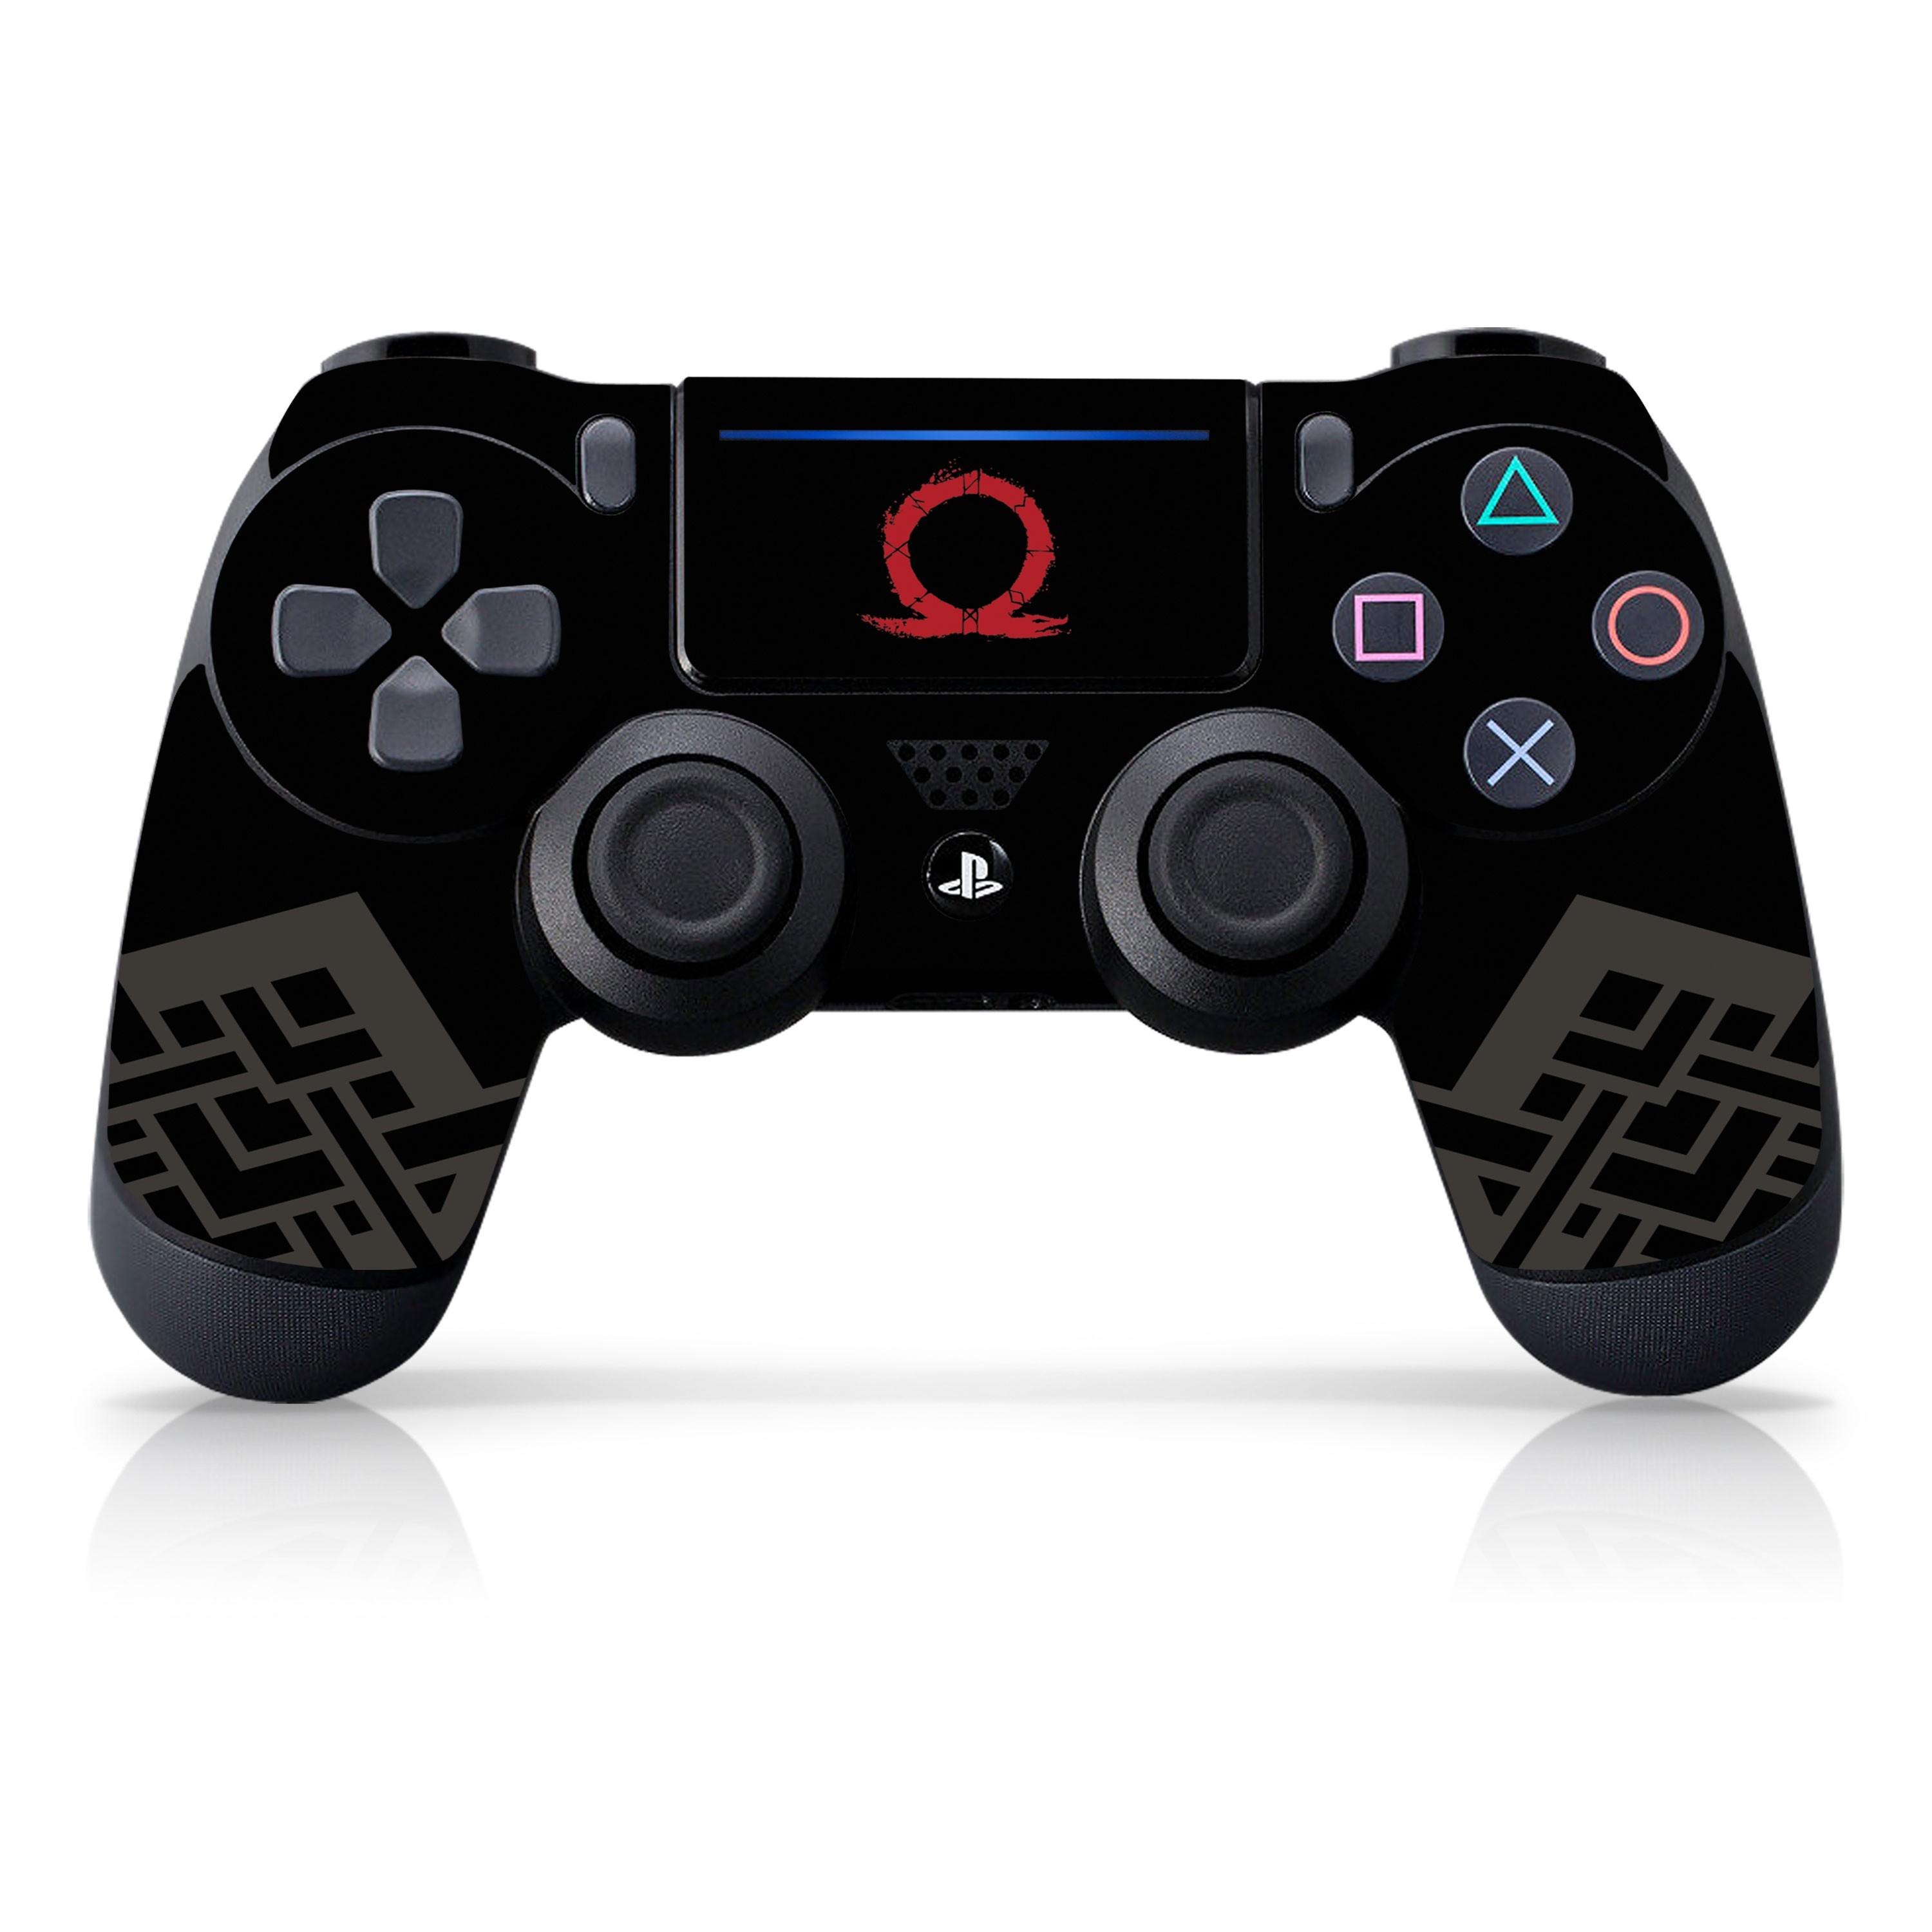 "Officially Licensed PlayStation 4 God of War DUALSHOCK 4 Wireless Controller Skin and Tech Decals ""Omega"""